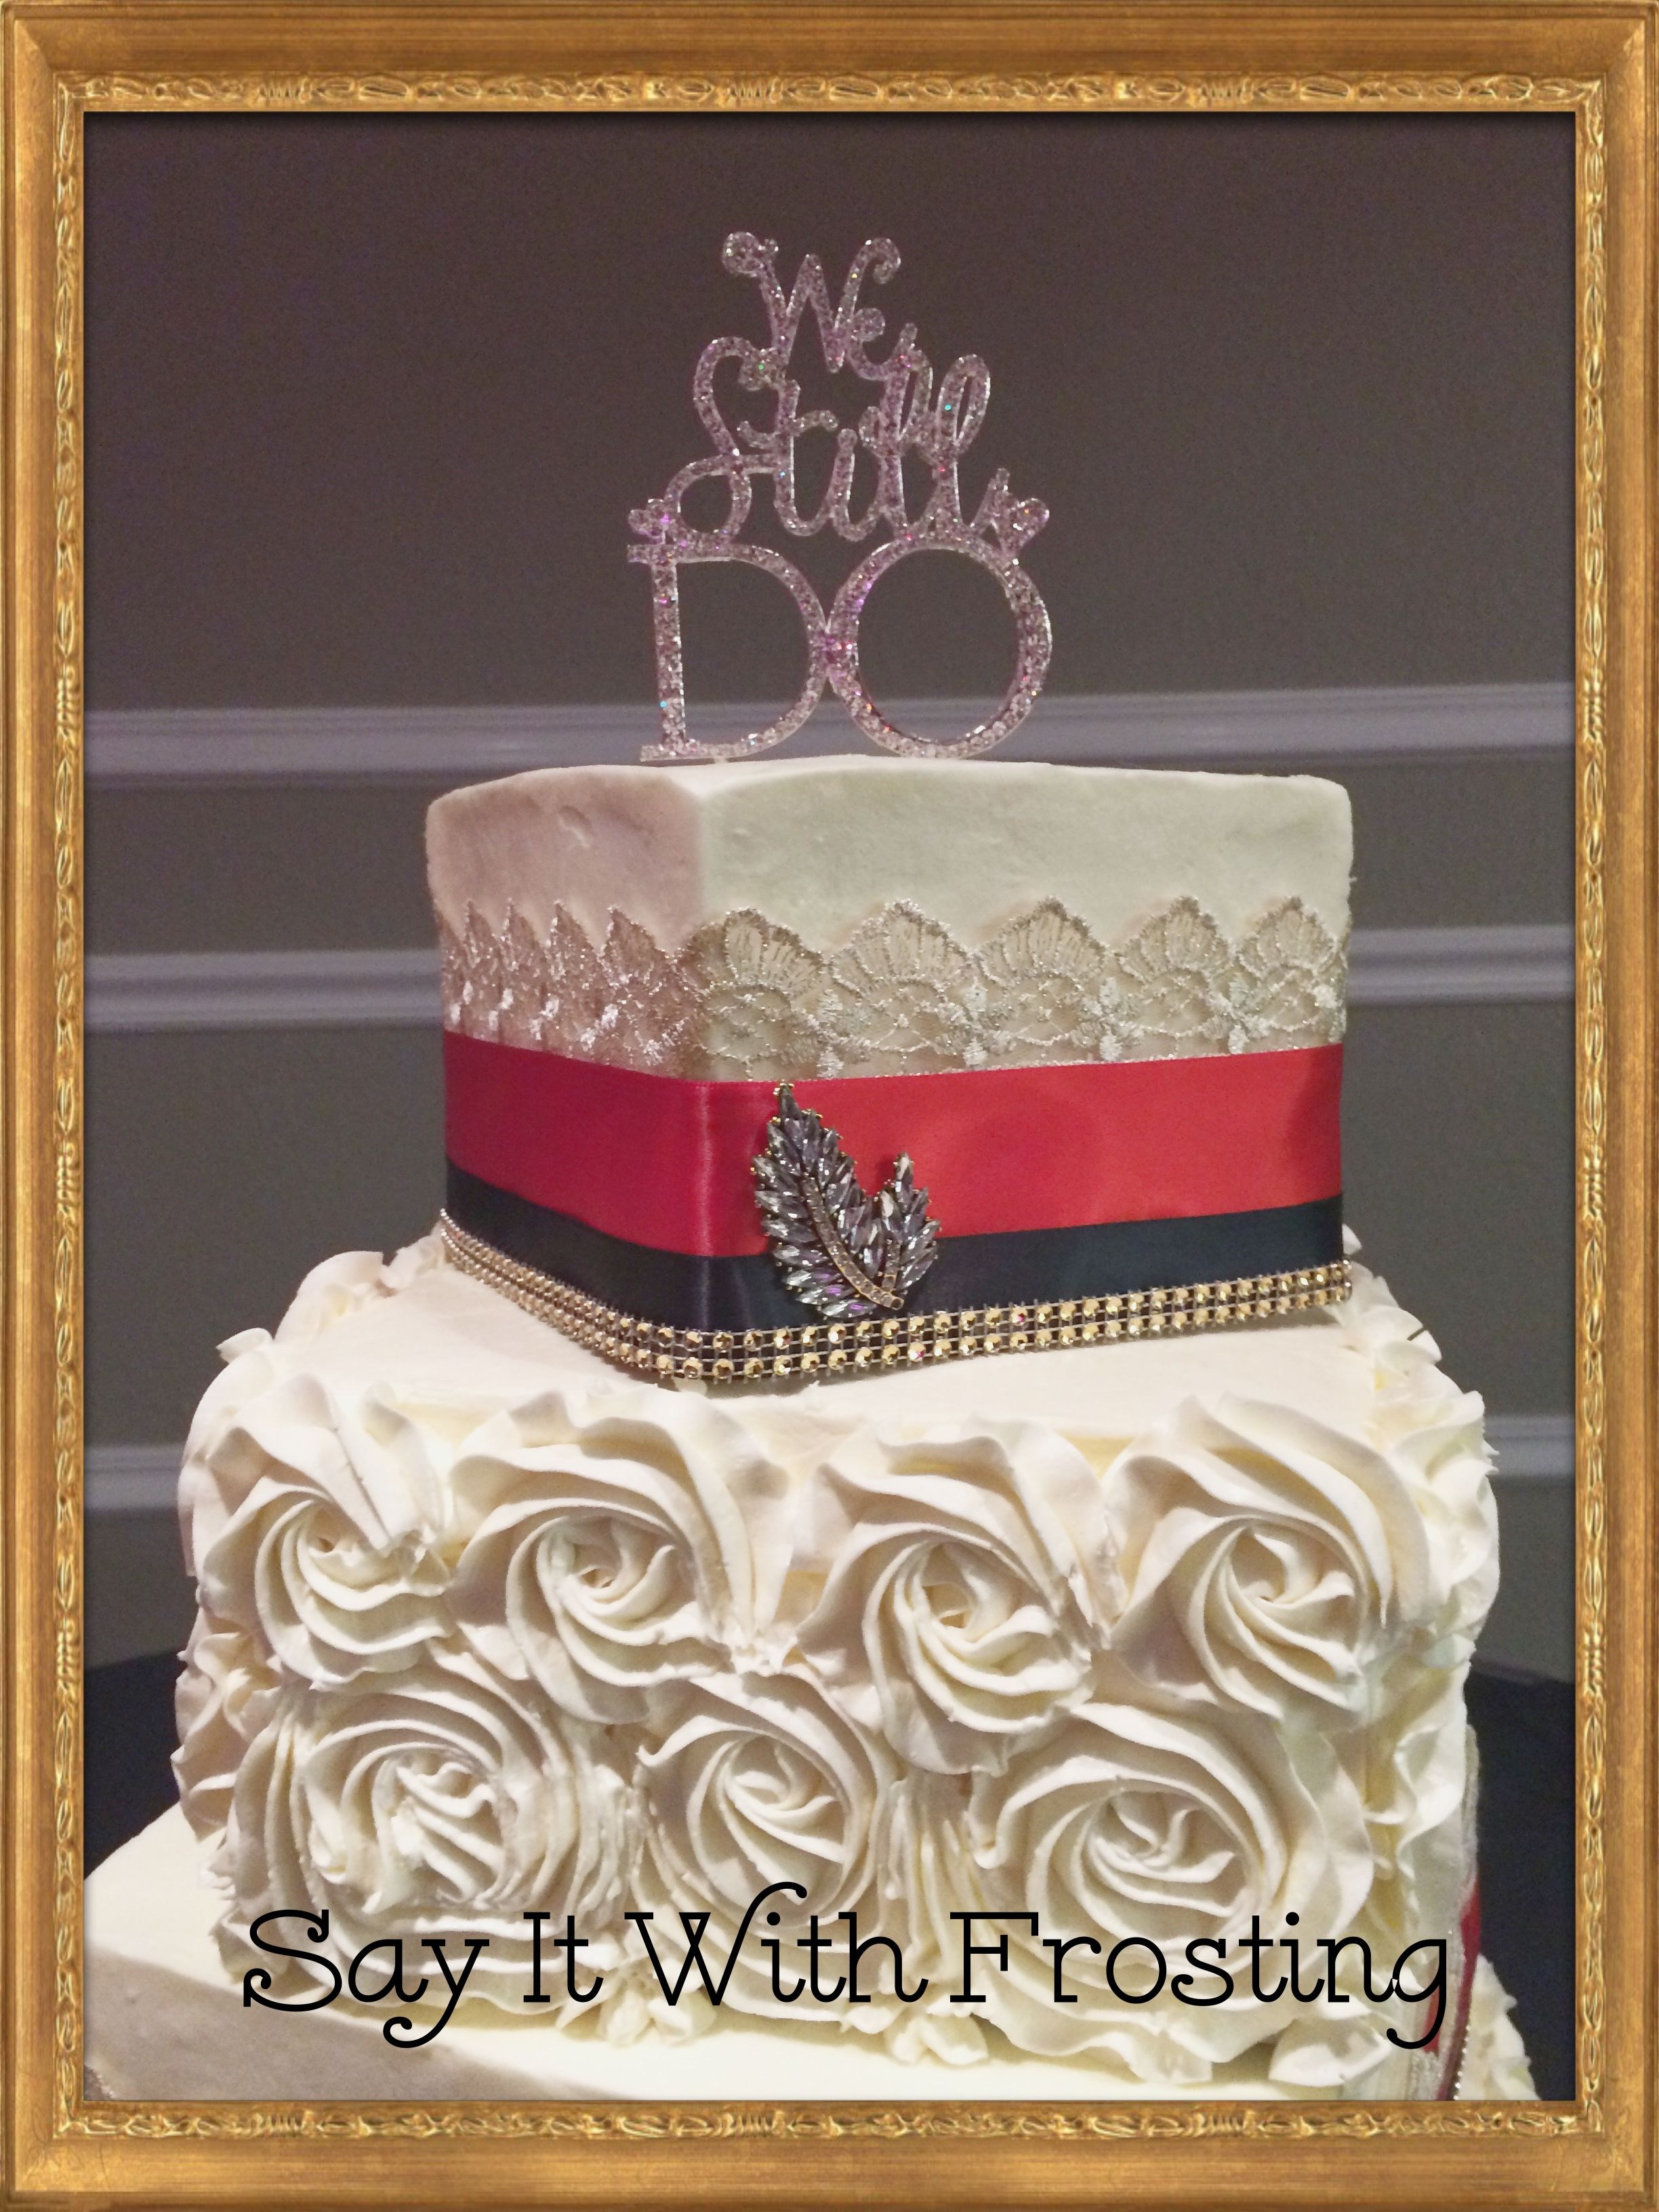 Pensacola Wedding Cakes Custom 50th Anniversary Cake For A Party At The New World